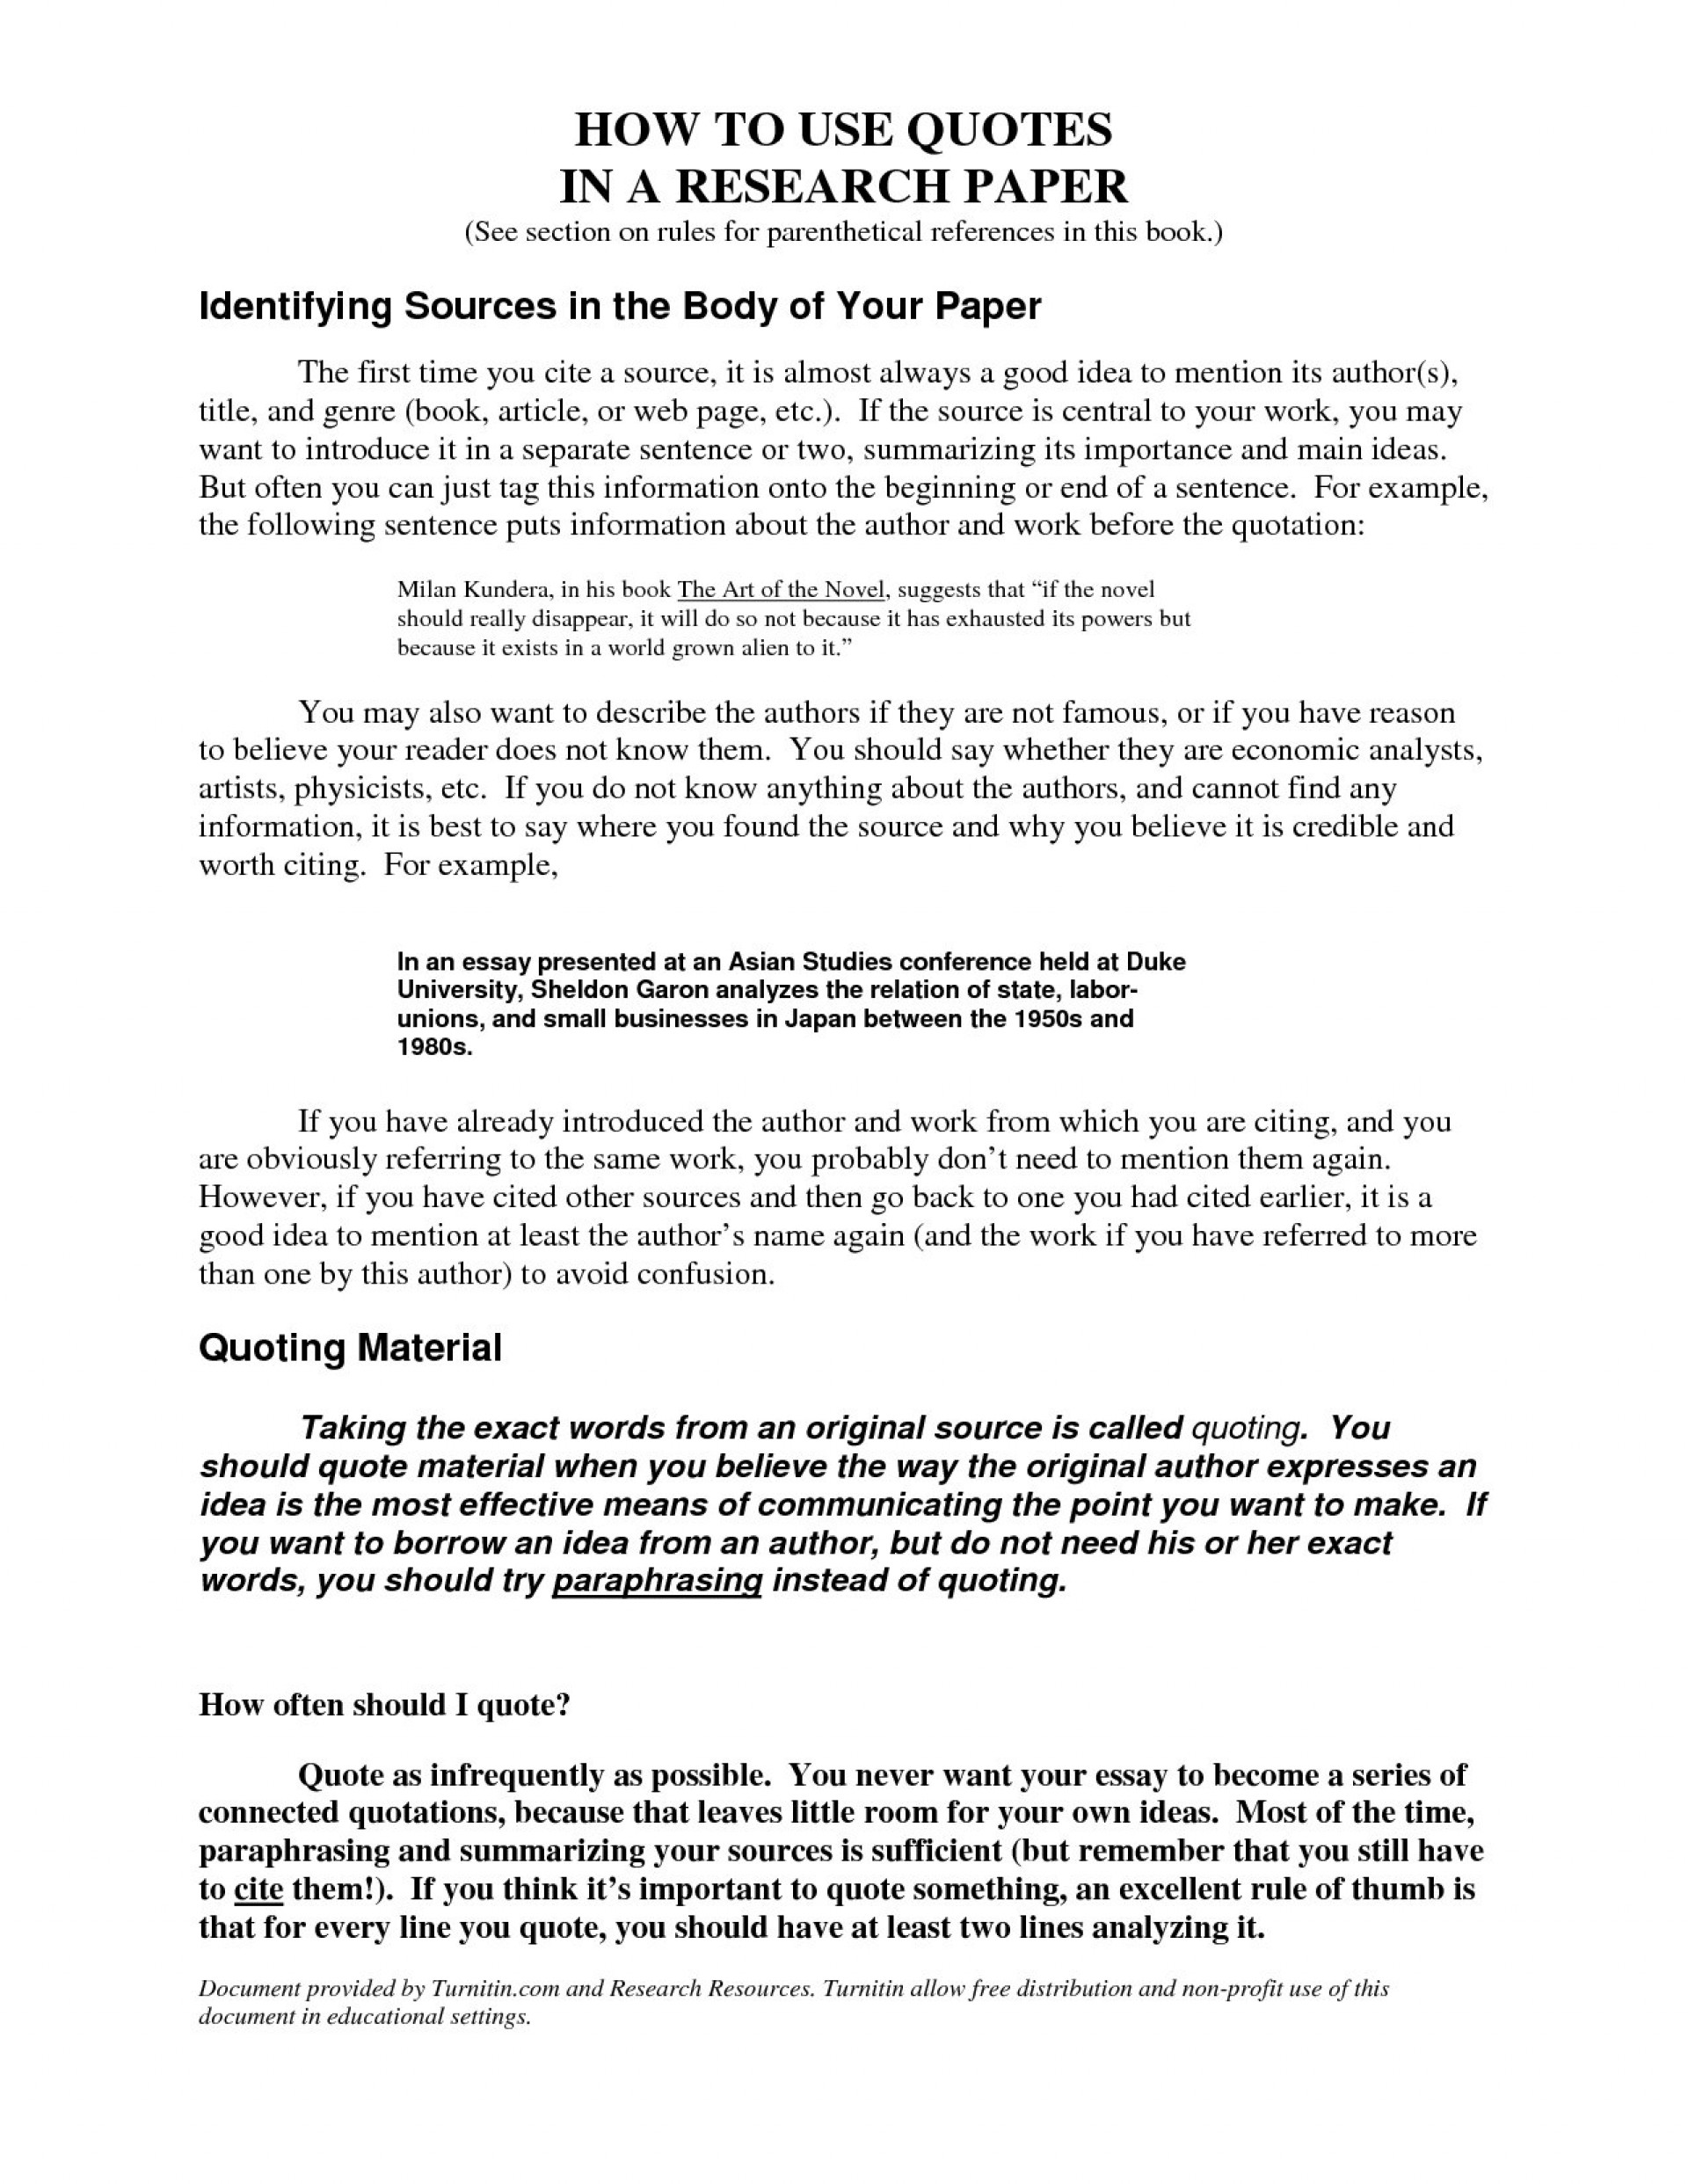 001 Quotes In Essay Format How To Cite Explanatory Quote Beginning With Sample Starting Example Using Frightening Essays Apa Mla Paper 1920